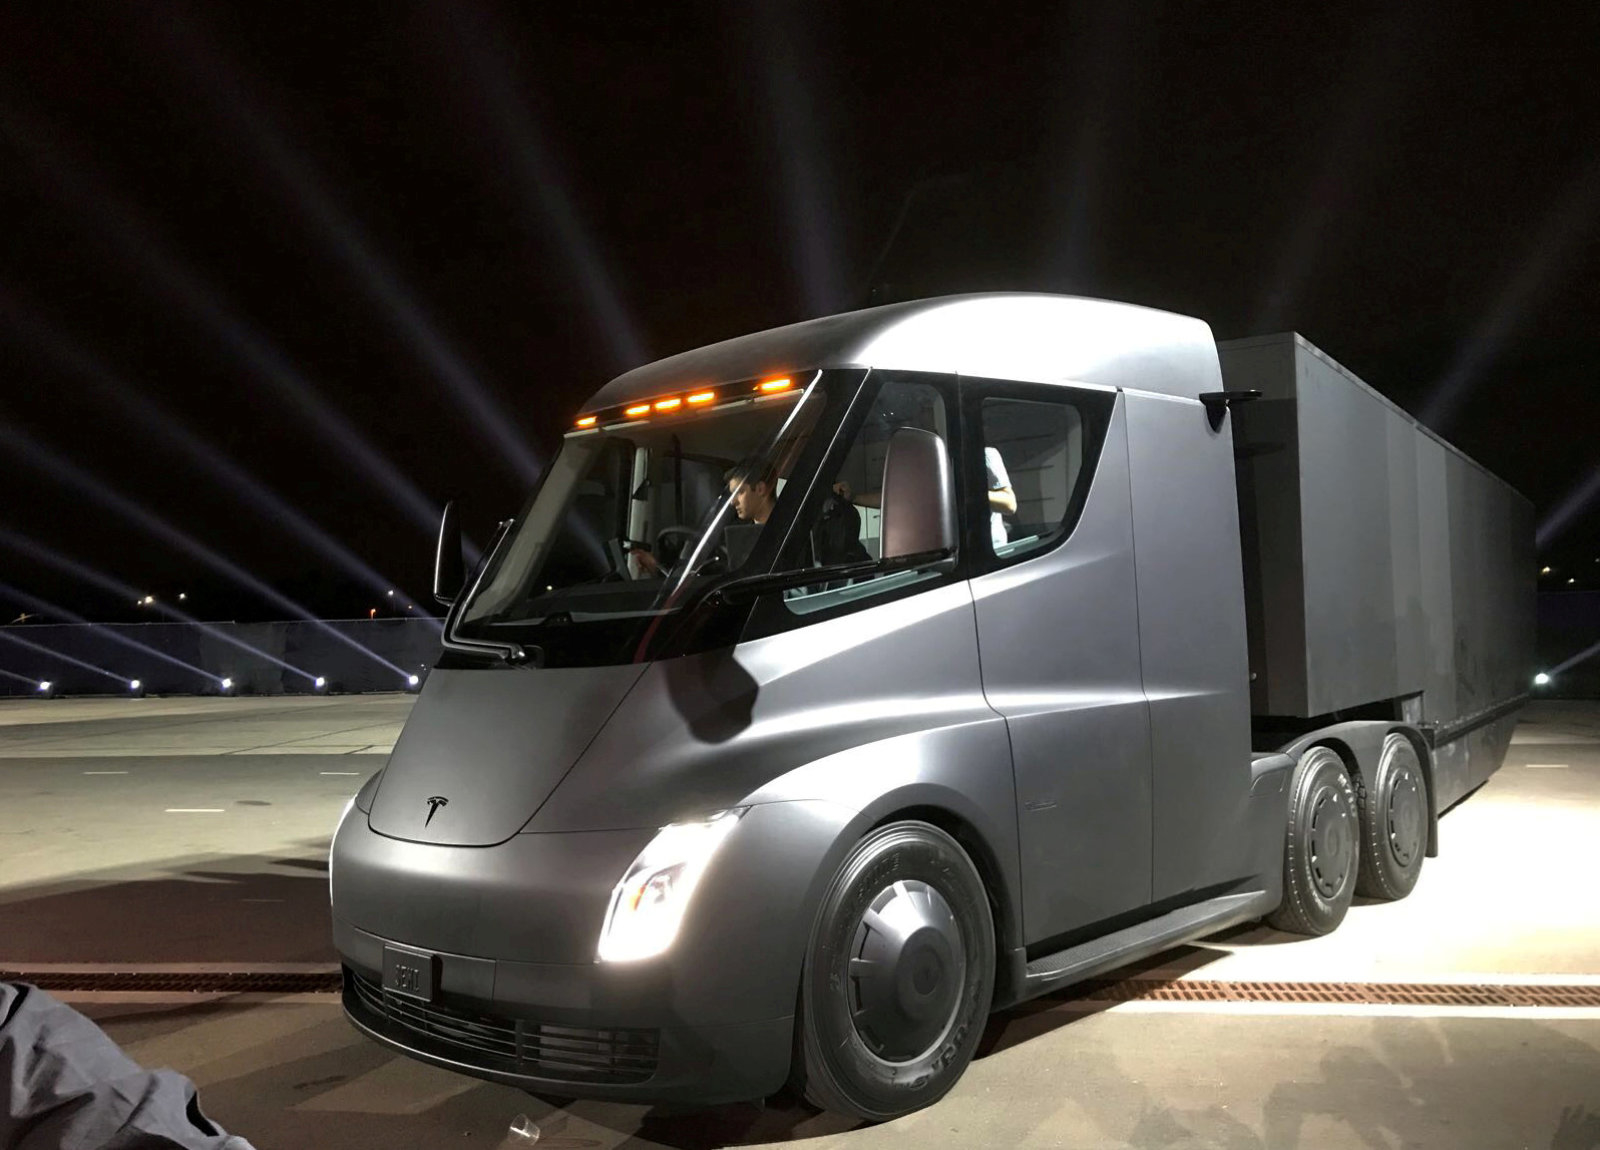 Tesla's new electric semi truck is unveiled during a presentation in Hawthorne, California, U.S., November 16, 2017. REUTERS/Alexandria Sage     TPX IMAGES OF THE DAY